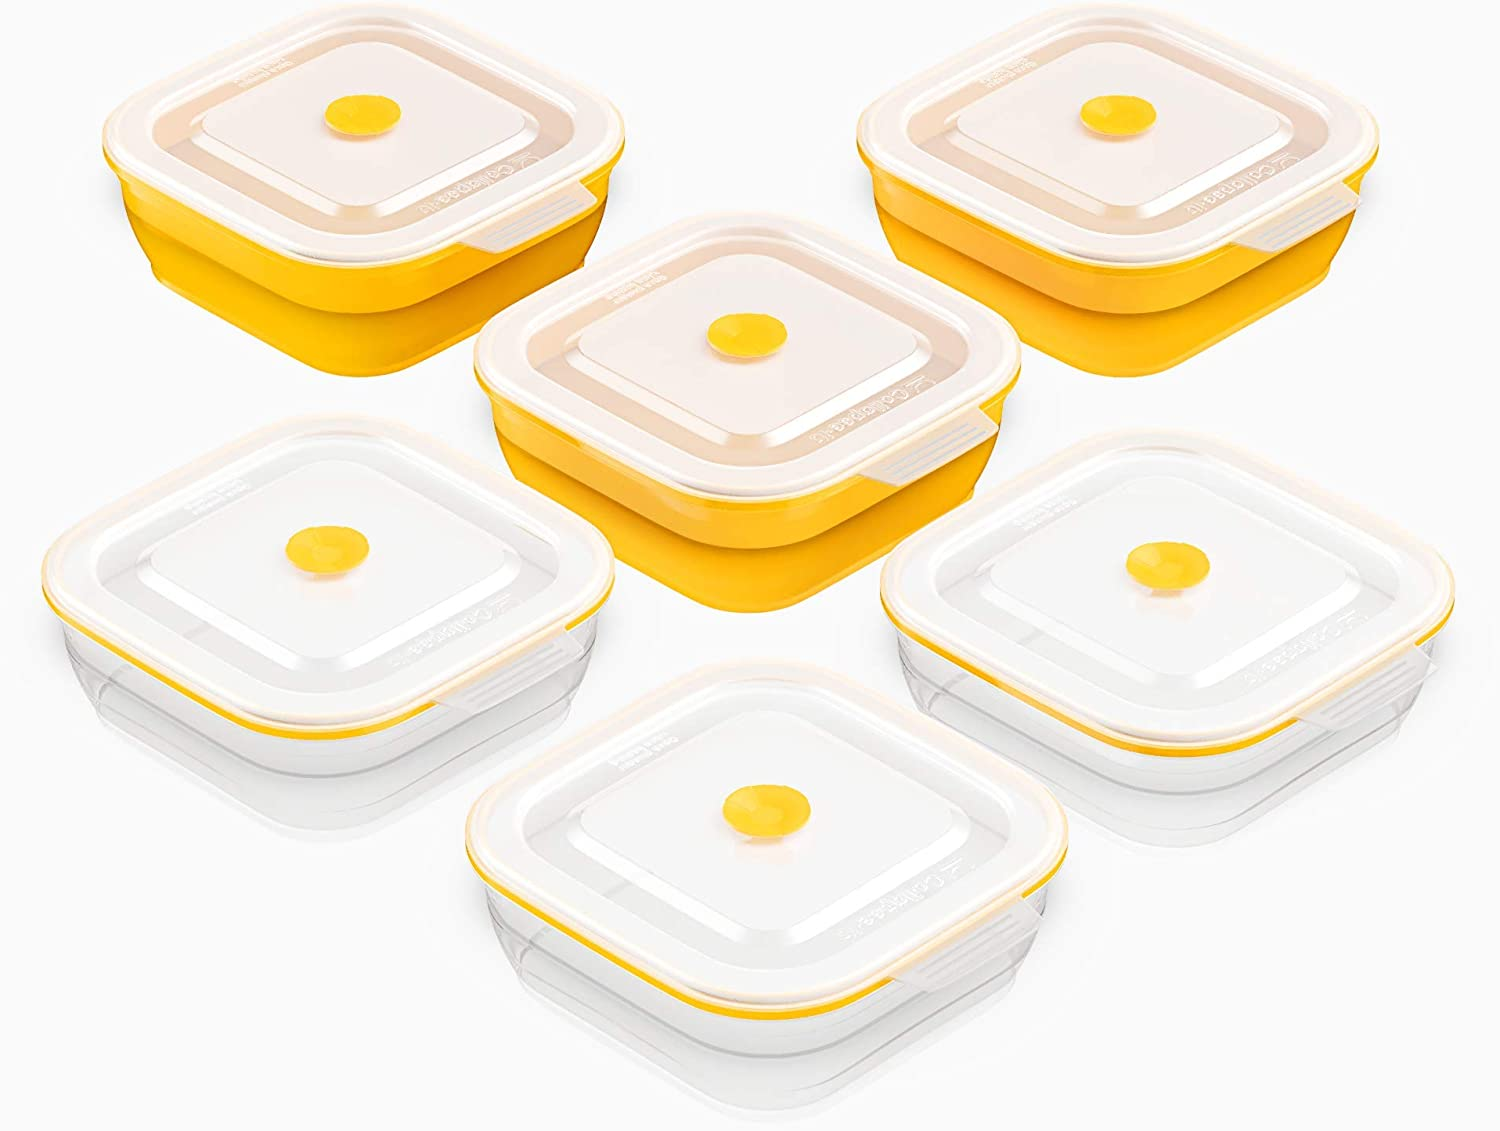 Collapse-it Silicone Food Storage Containers - BPA Free Airtight Silicone Lids Collapsible Lunch Box Containers - Oven, Microwave, Freezer Safe (Yellow (6) 2-Cup Set)